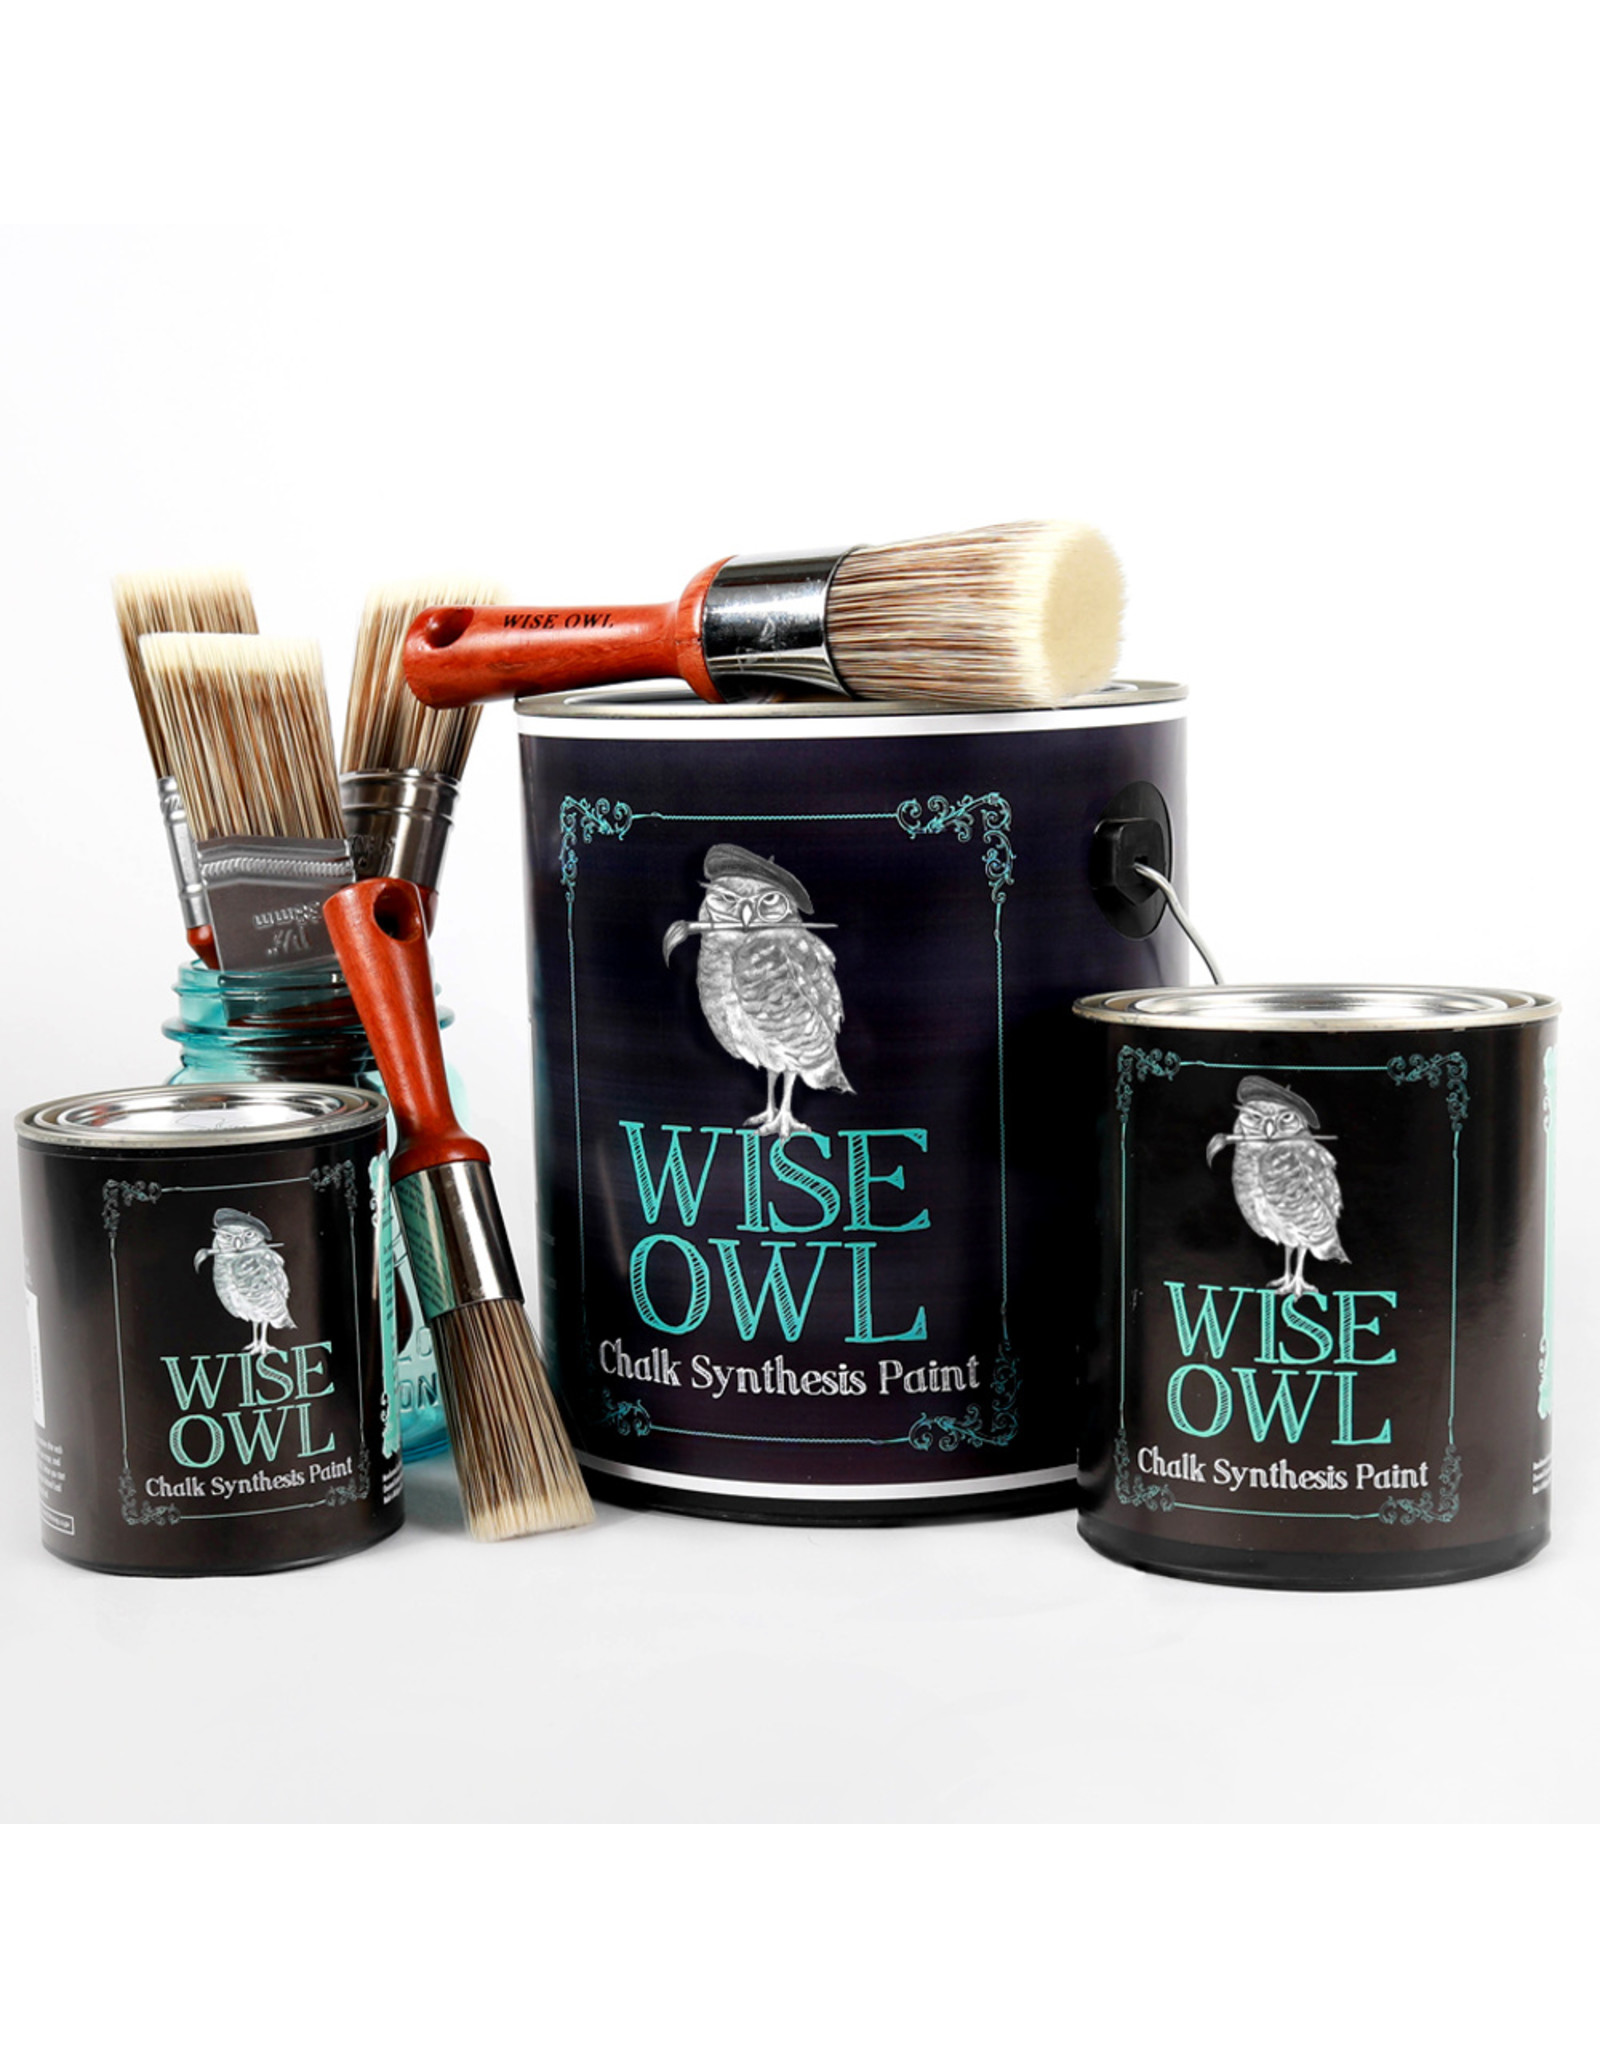 Wise Owl Paint Chalk Synthesis Paint Weathervane-Pint